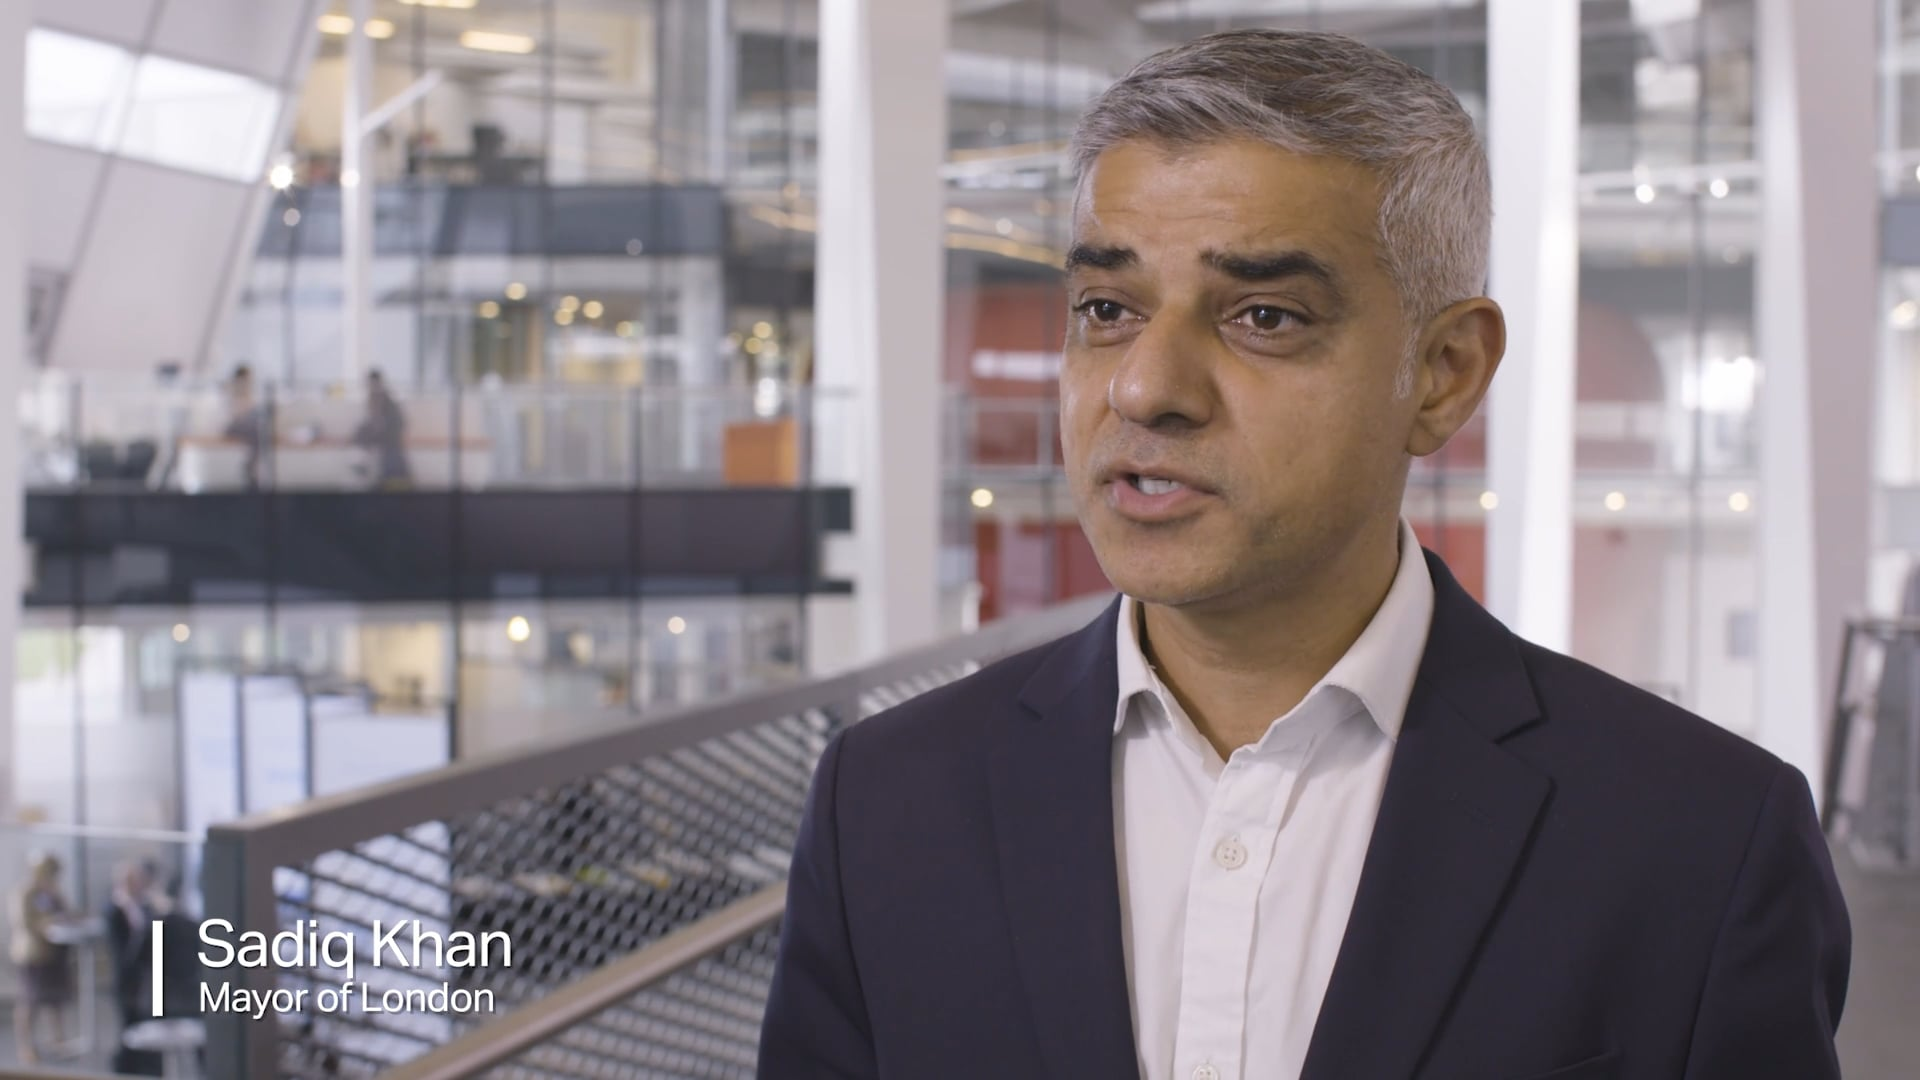 Major of London - Homes for Londoners Conference 2019